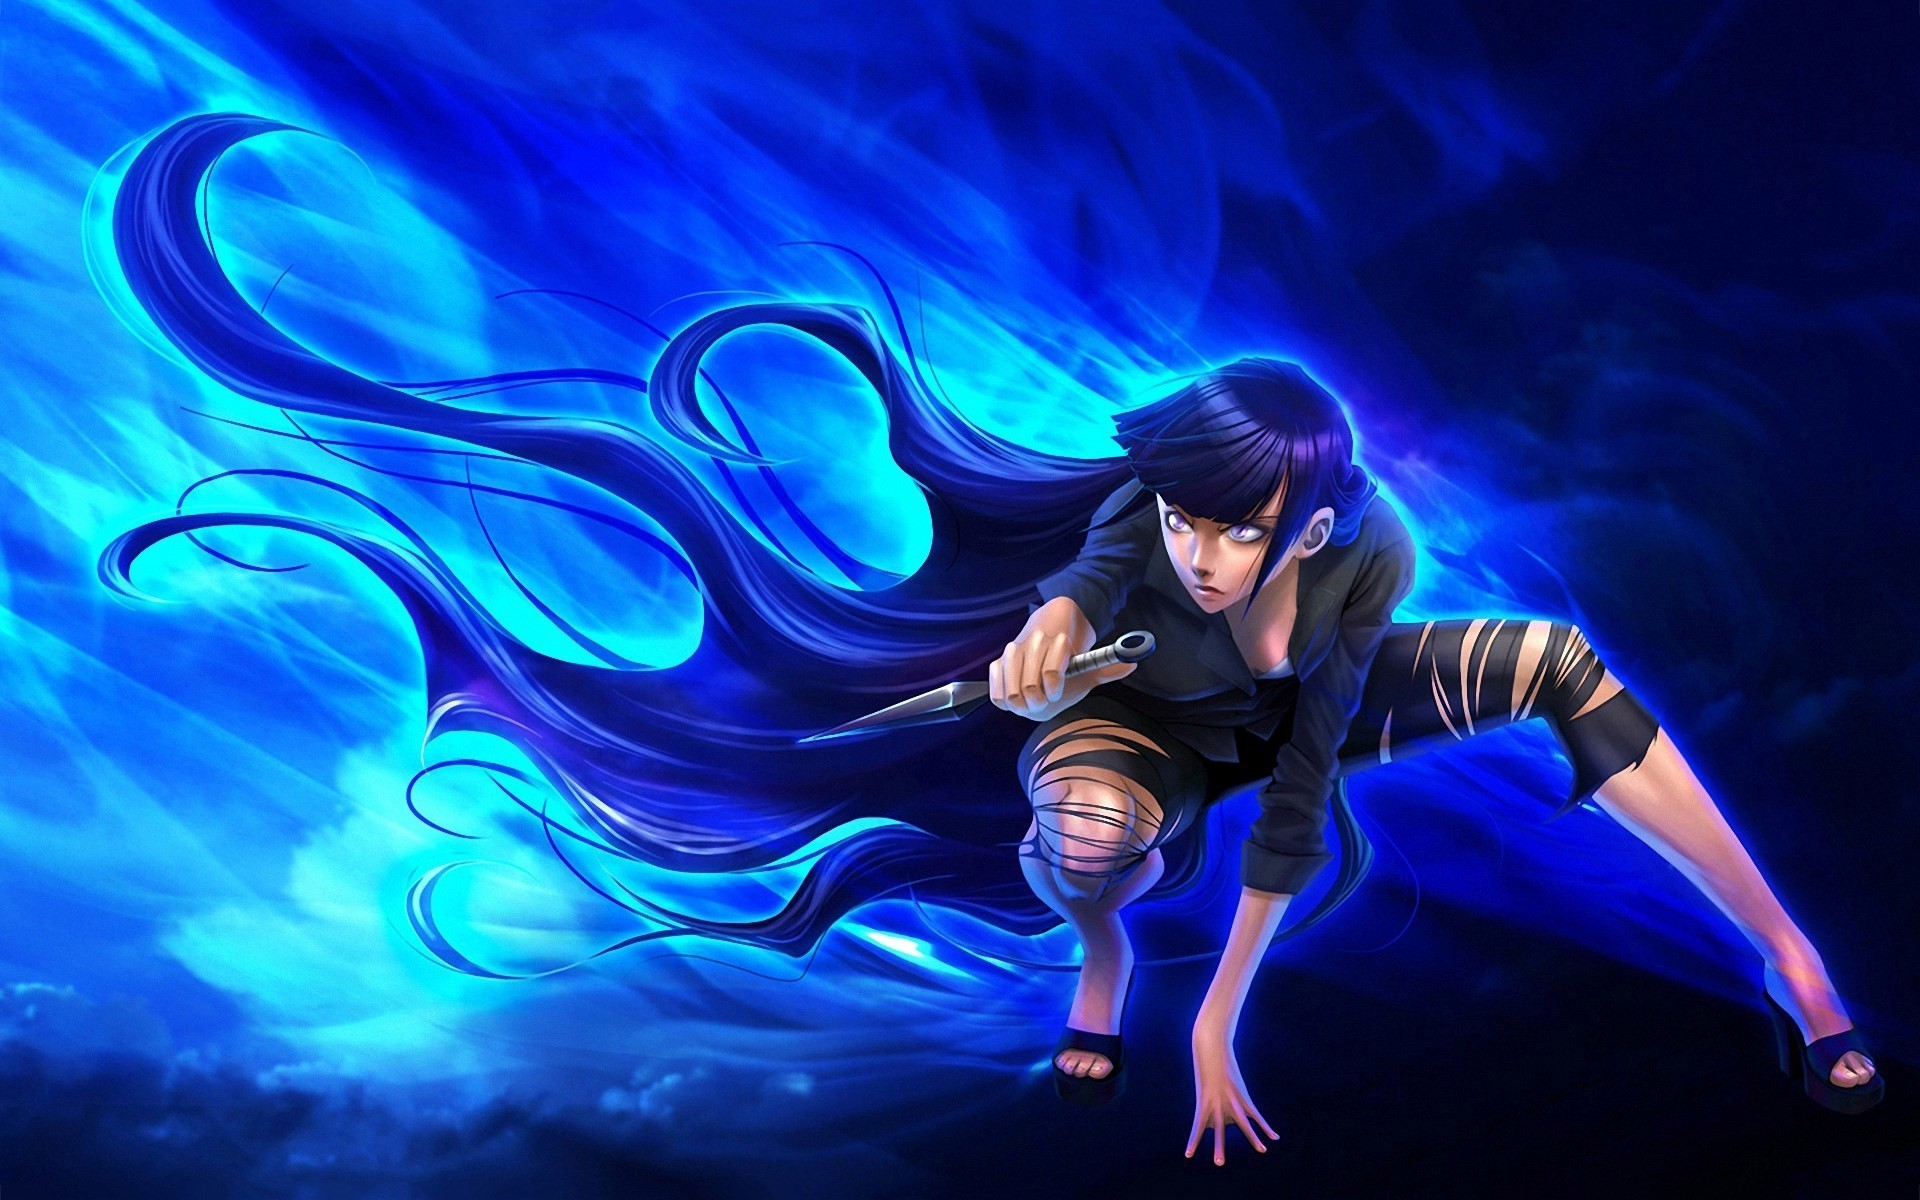 1920x1200 Cool Naruto Wallpapers Hd, Gallery of Naruto HD Backgrounds 1920×1080 Naruto  Wallpapers HD